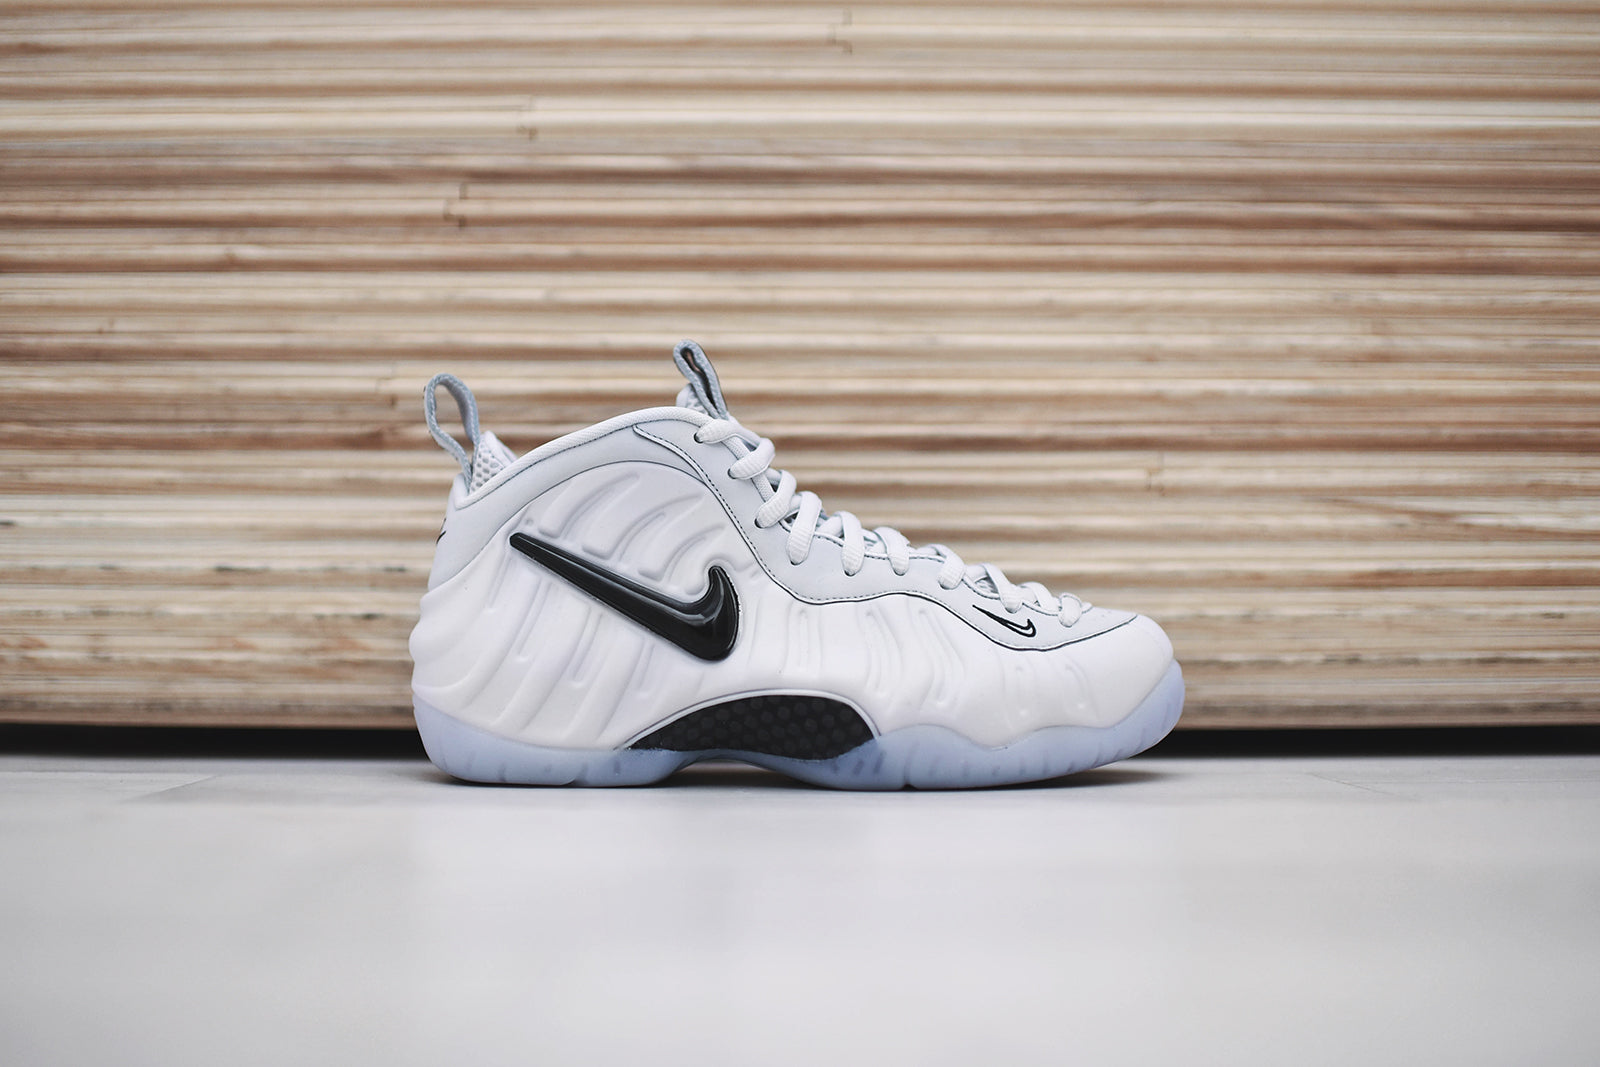 new style 2514c 123bc Nike Air Foamposite Pro AS QS - Vast Grey / Black – Kith